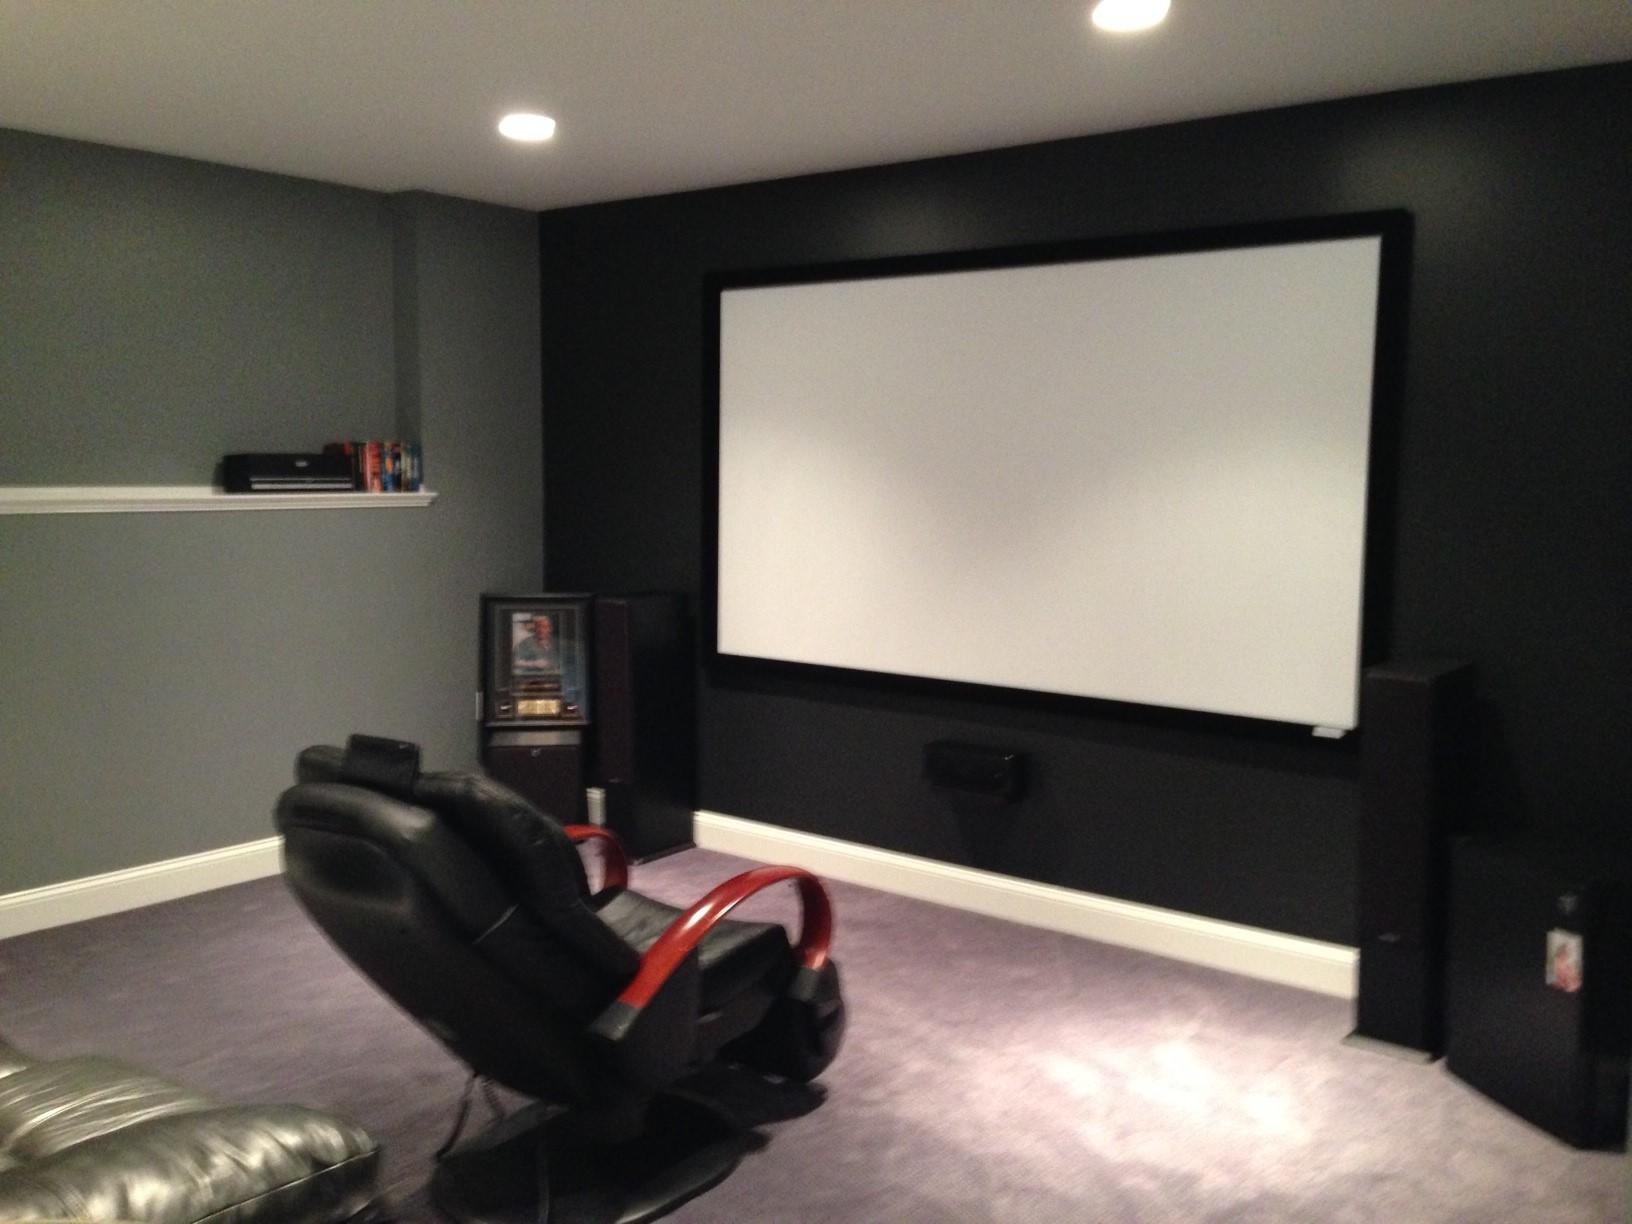 Home theater room installation with everything you need.